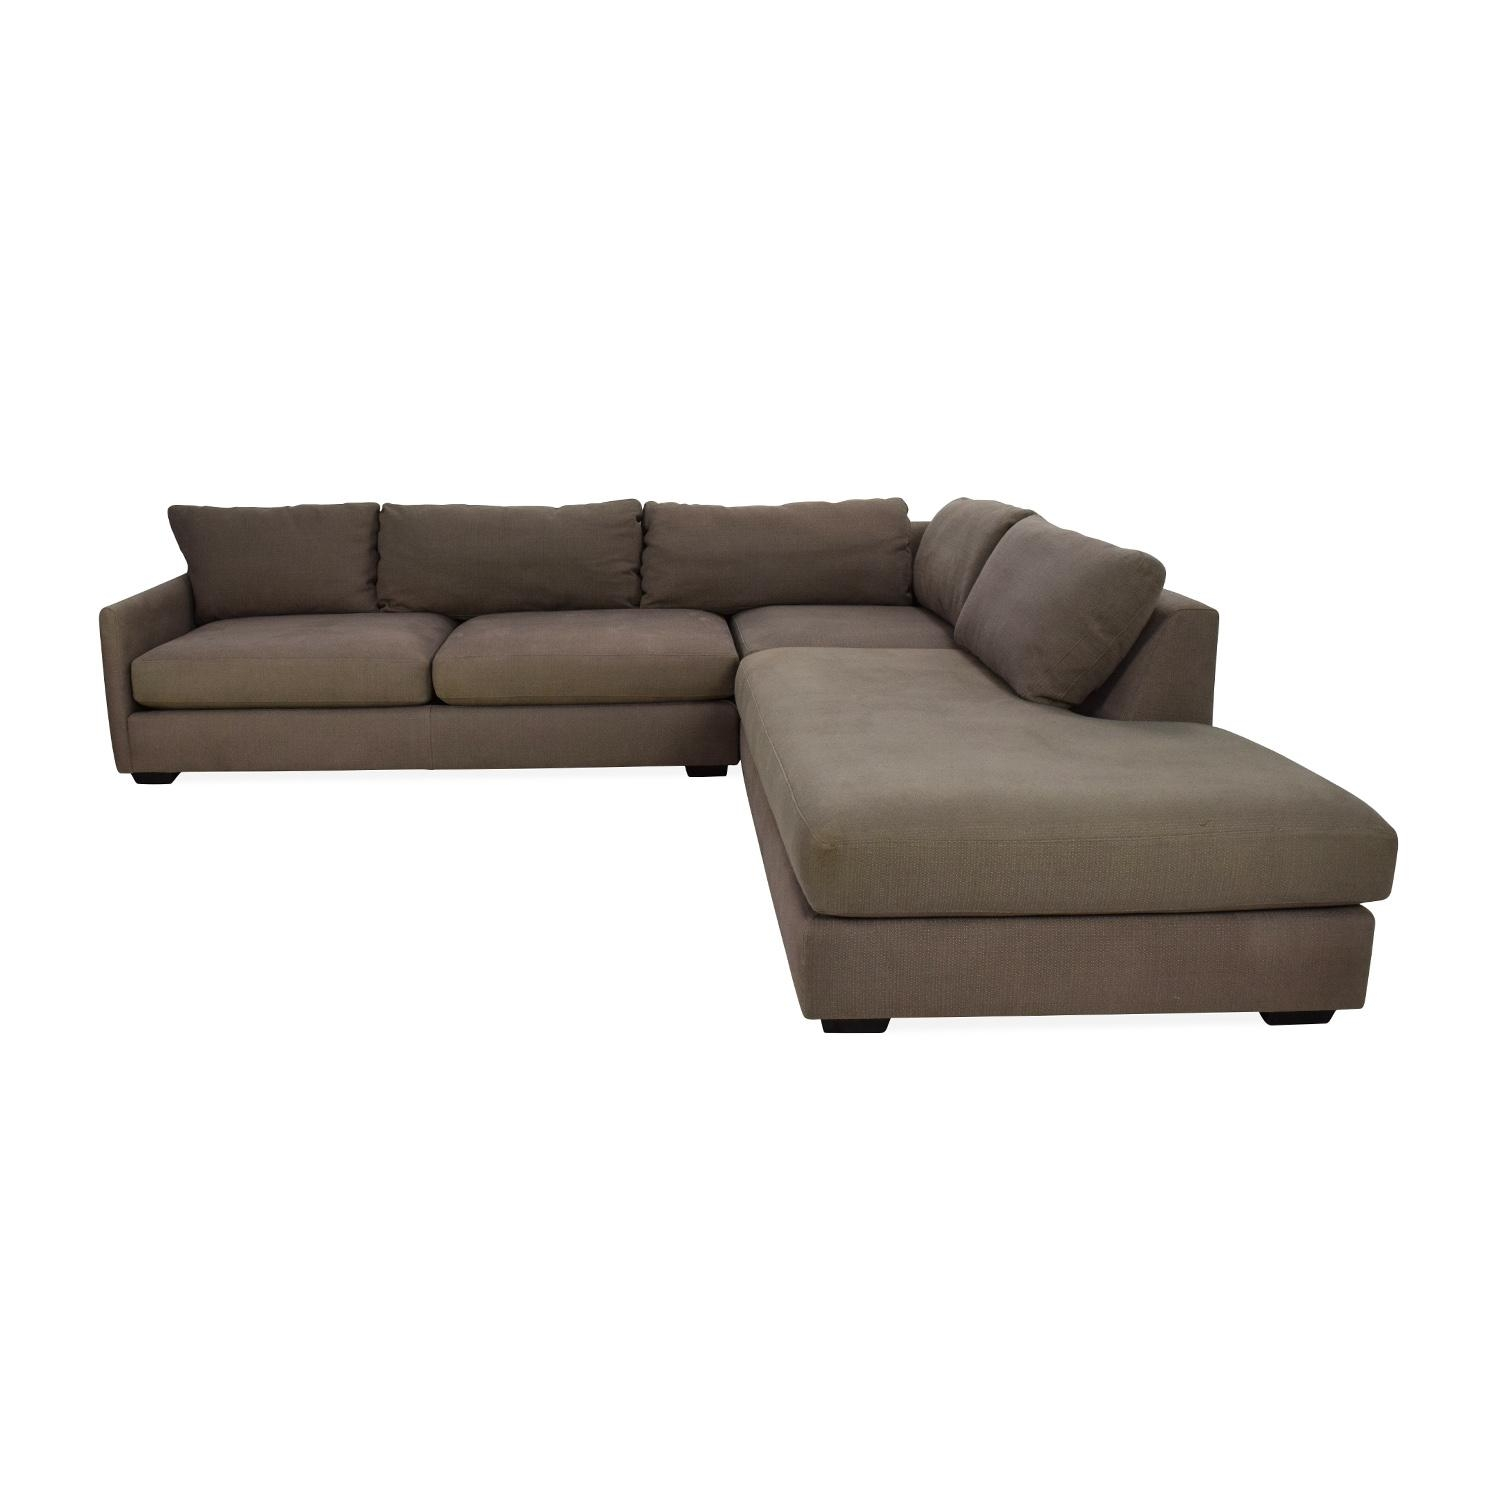 51% Off – Macy's Radley Sectional Sofa / Sofas Intended For Used Sectionals (View 16 of 20)